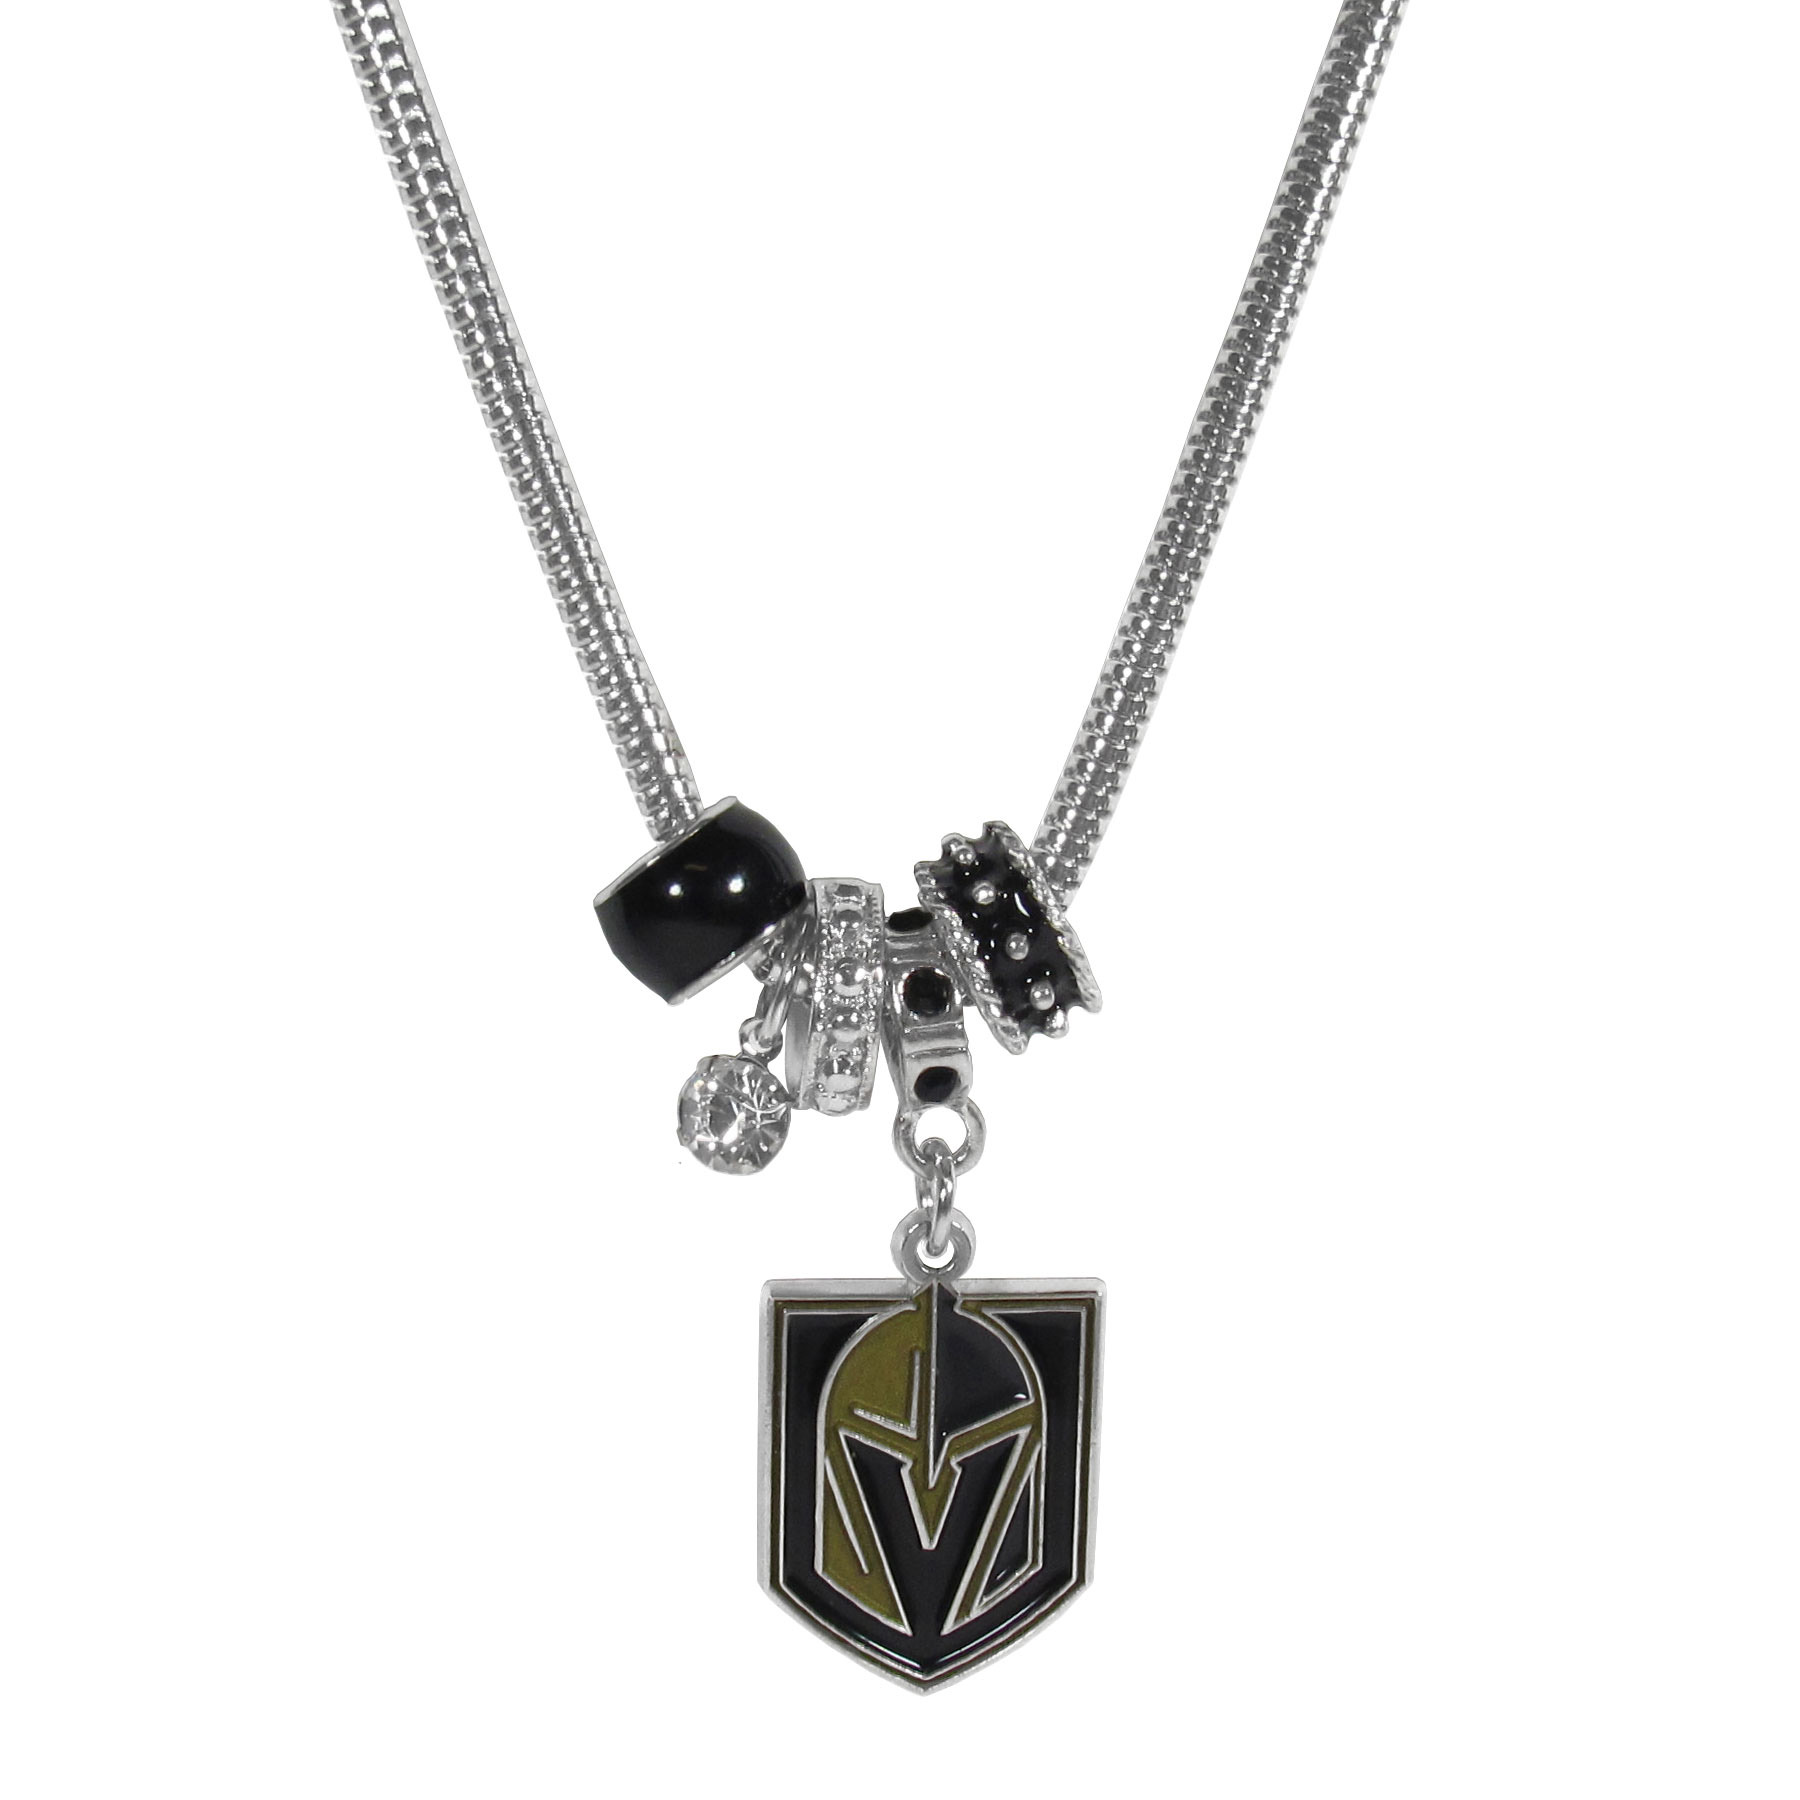 Las Vegas Golden Knights® Euro Bead Necklace - We have combined the wildly popular Euro style beads with your favorite team to create our Las Vegas Golden Knights® bead necklace. The 18 inch snake chain features 4 Euro beads with enameled team colors and rhinestone accents with a high polish, nickel free charm and rhinestone charm. Perfect way to show off your team pride.